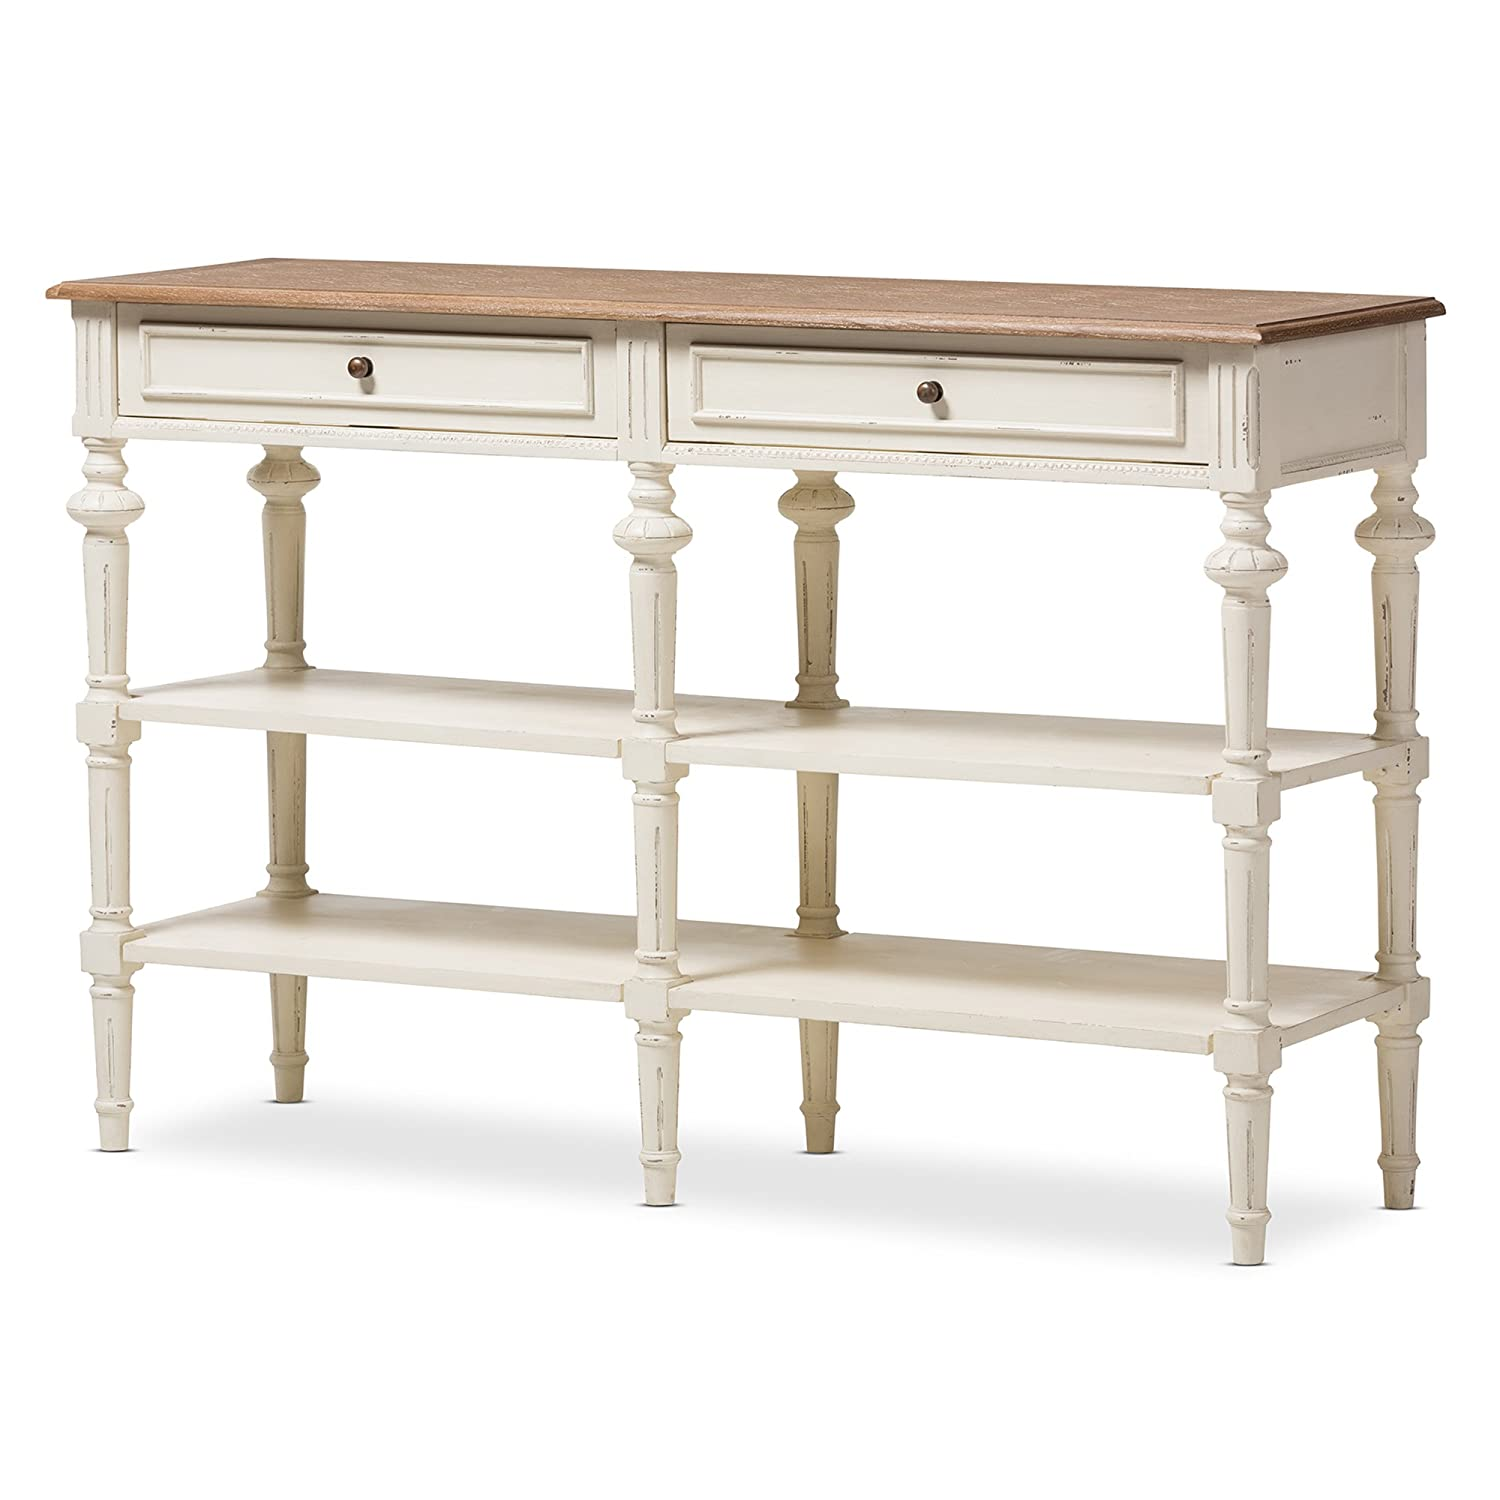 CDM product Baxton Studio Emeline French Provincial Weathered Oak and Whitewash Console Table, White/Natural big image